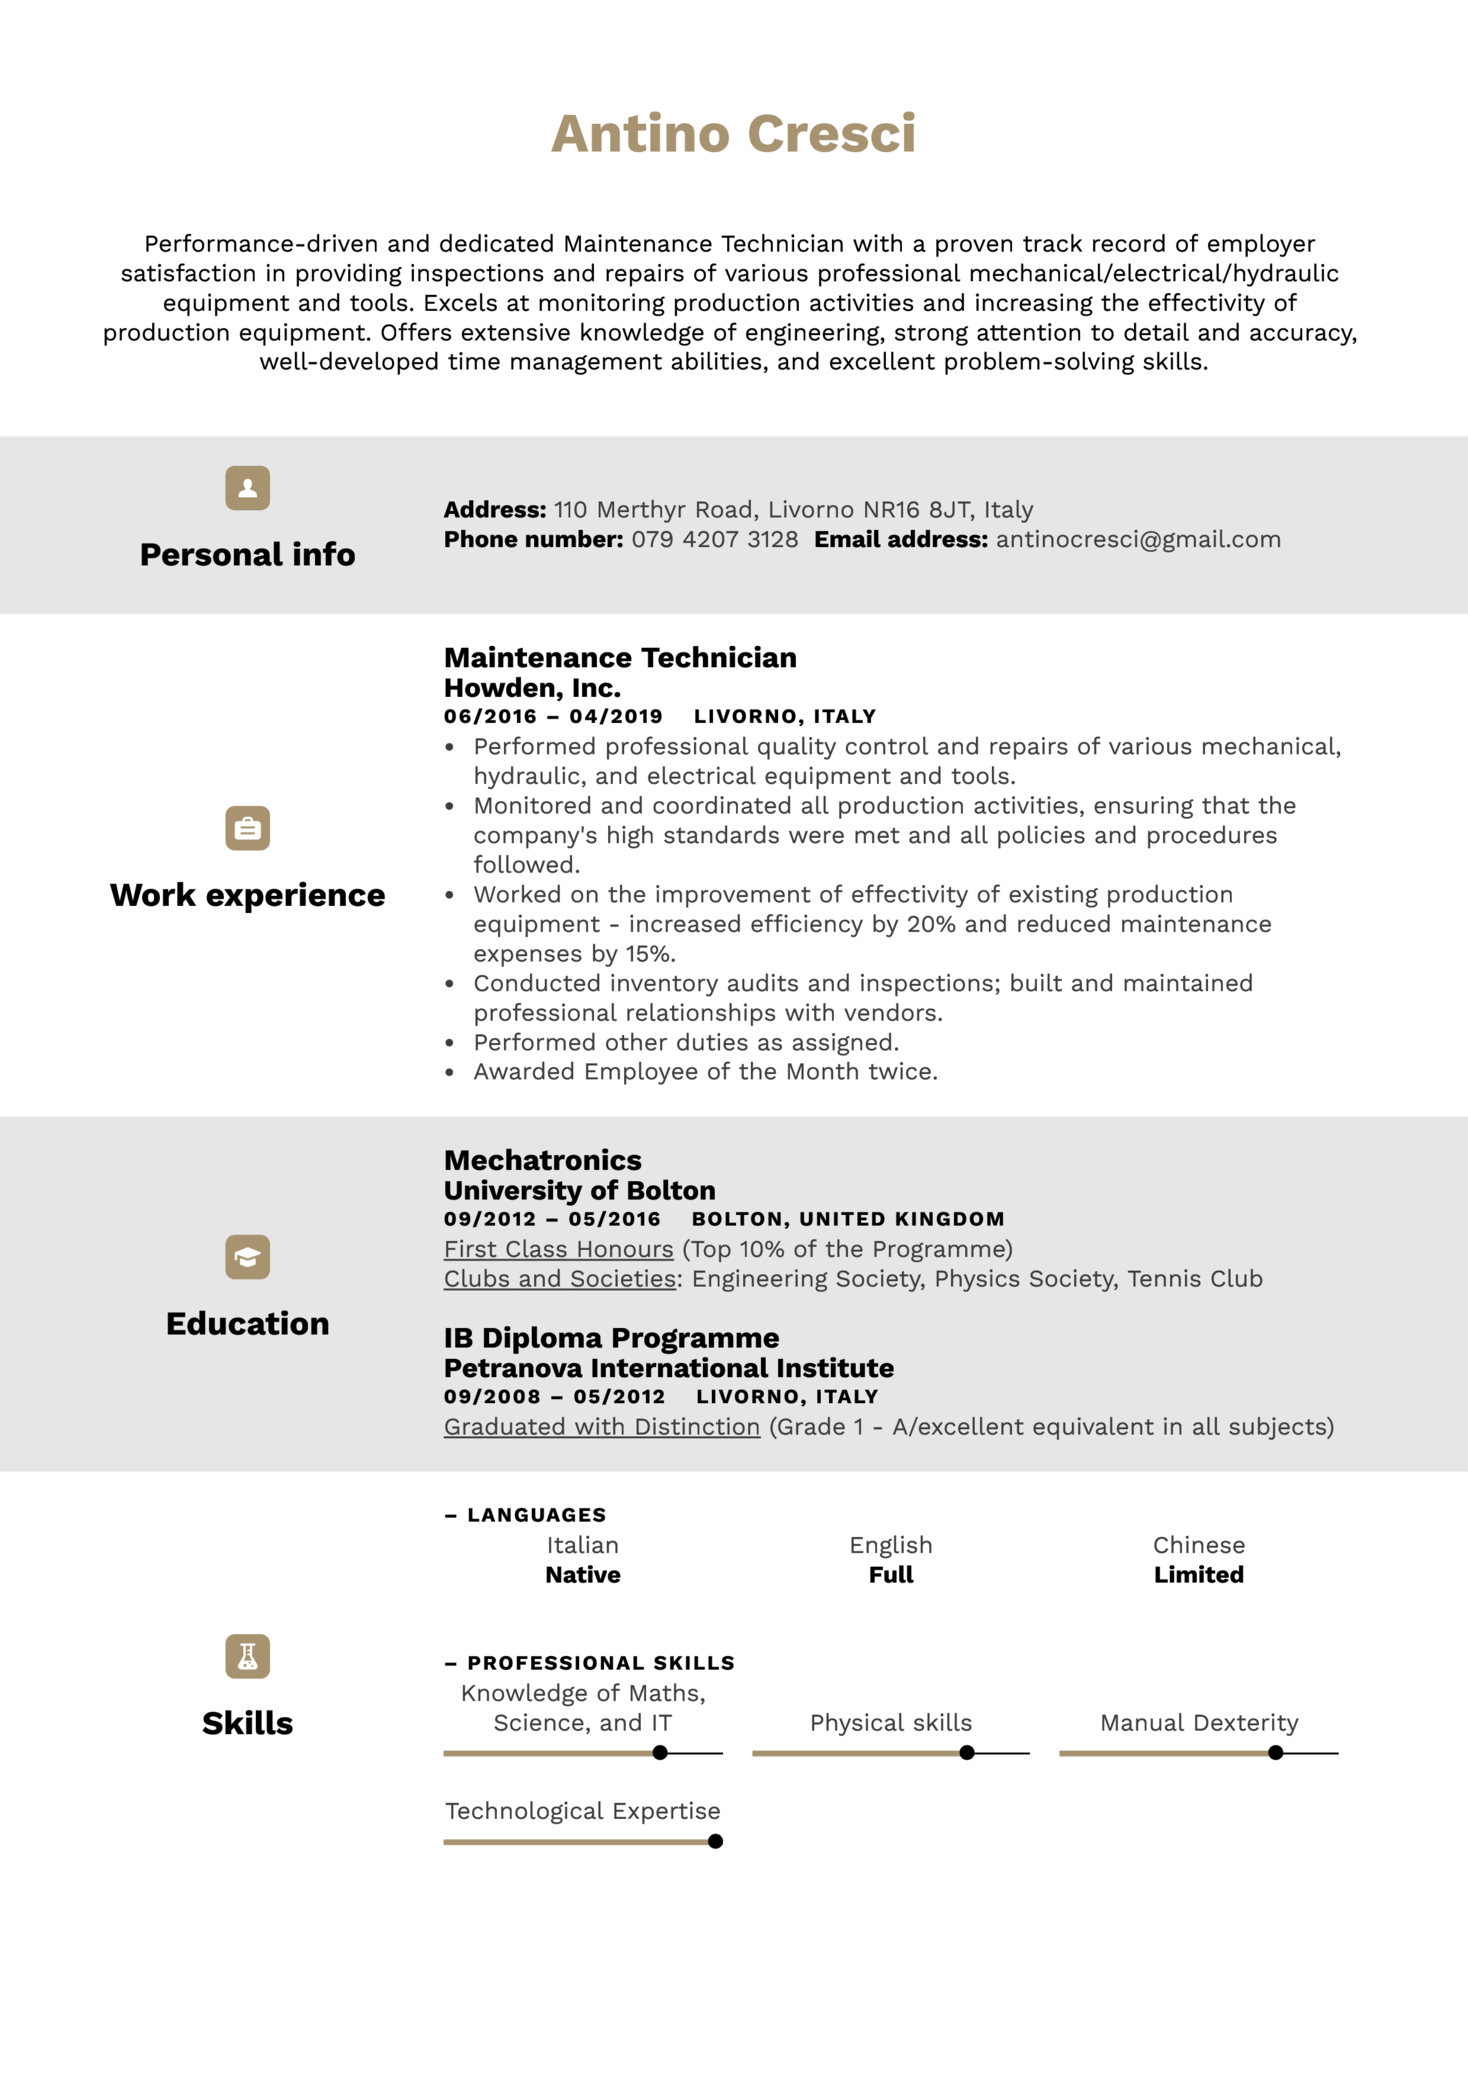 Maintenance Technician Resume Example (Teil 1)